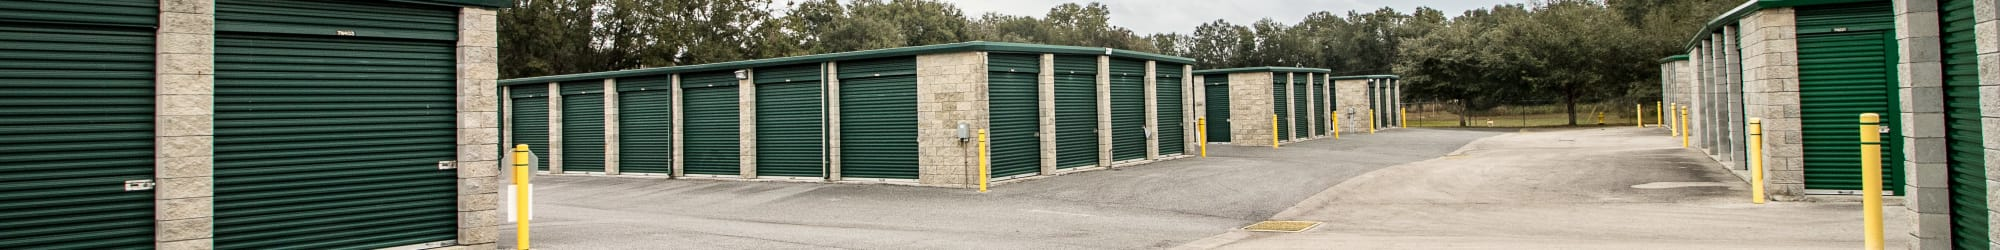 Self storage features at Neighborhood Storage in Belleview